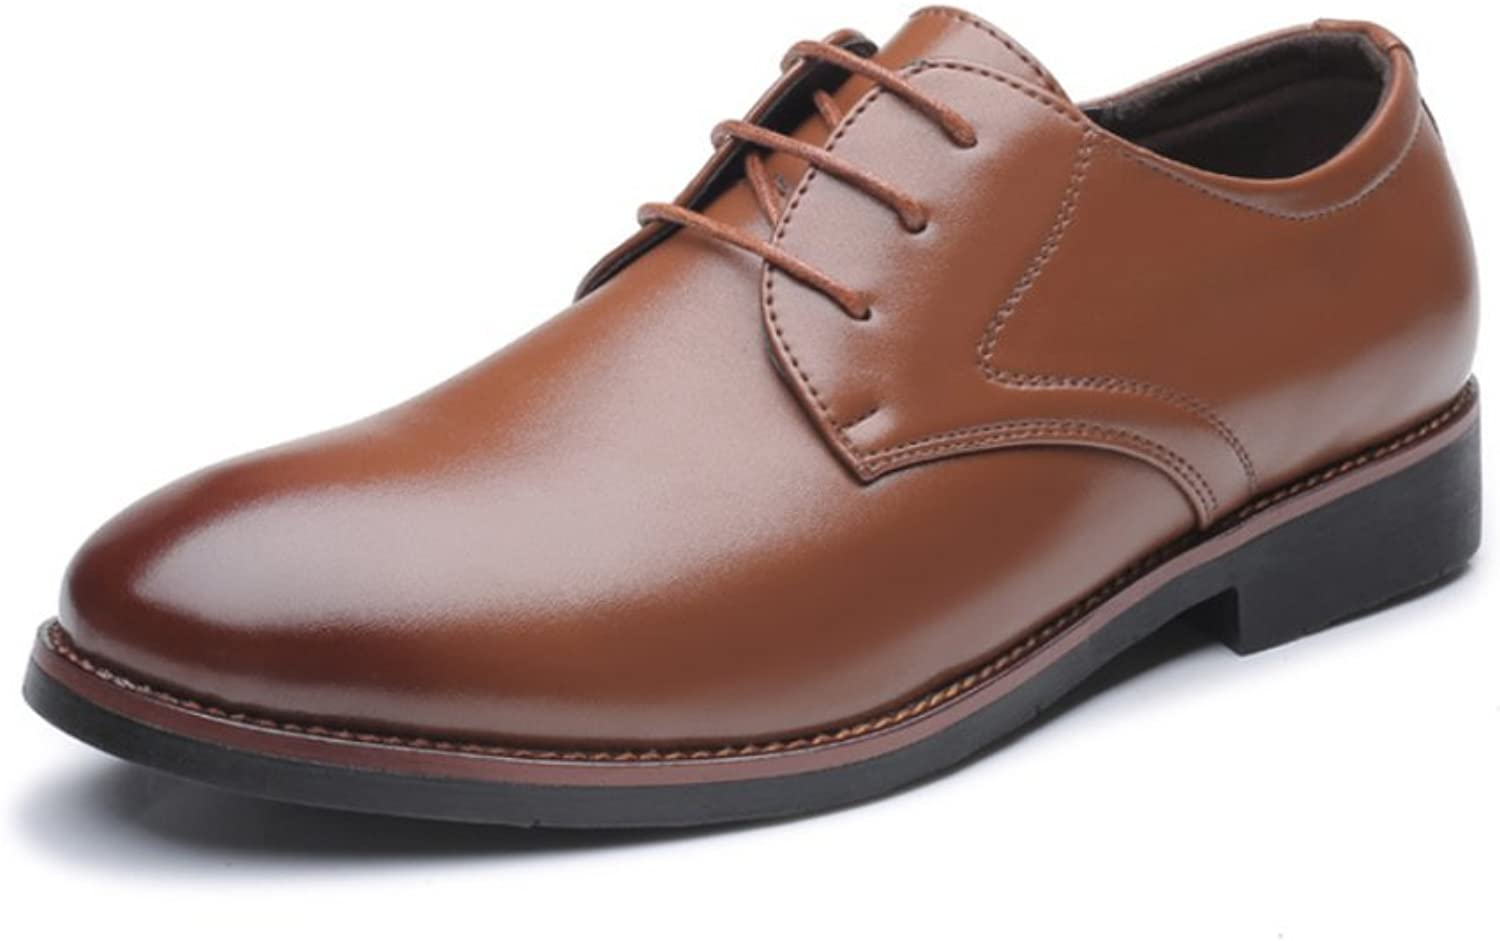 LYZGF Men Gentleman Business Casual Fashion 47 Extra Large Round Head Lace up Leather shoes